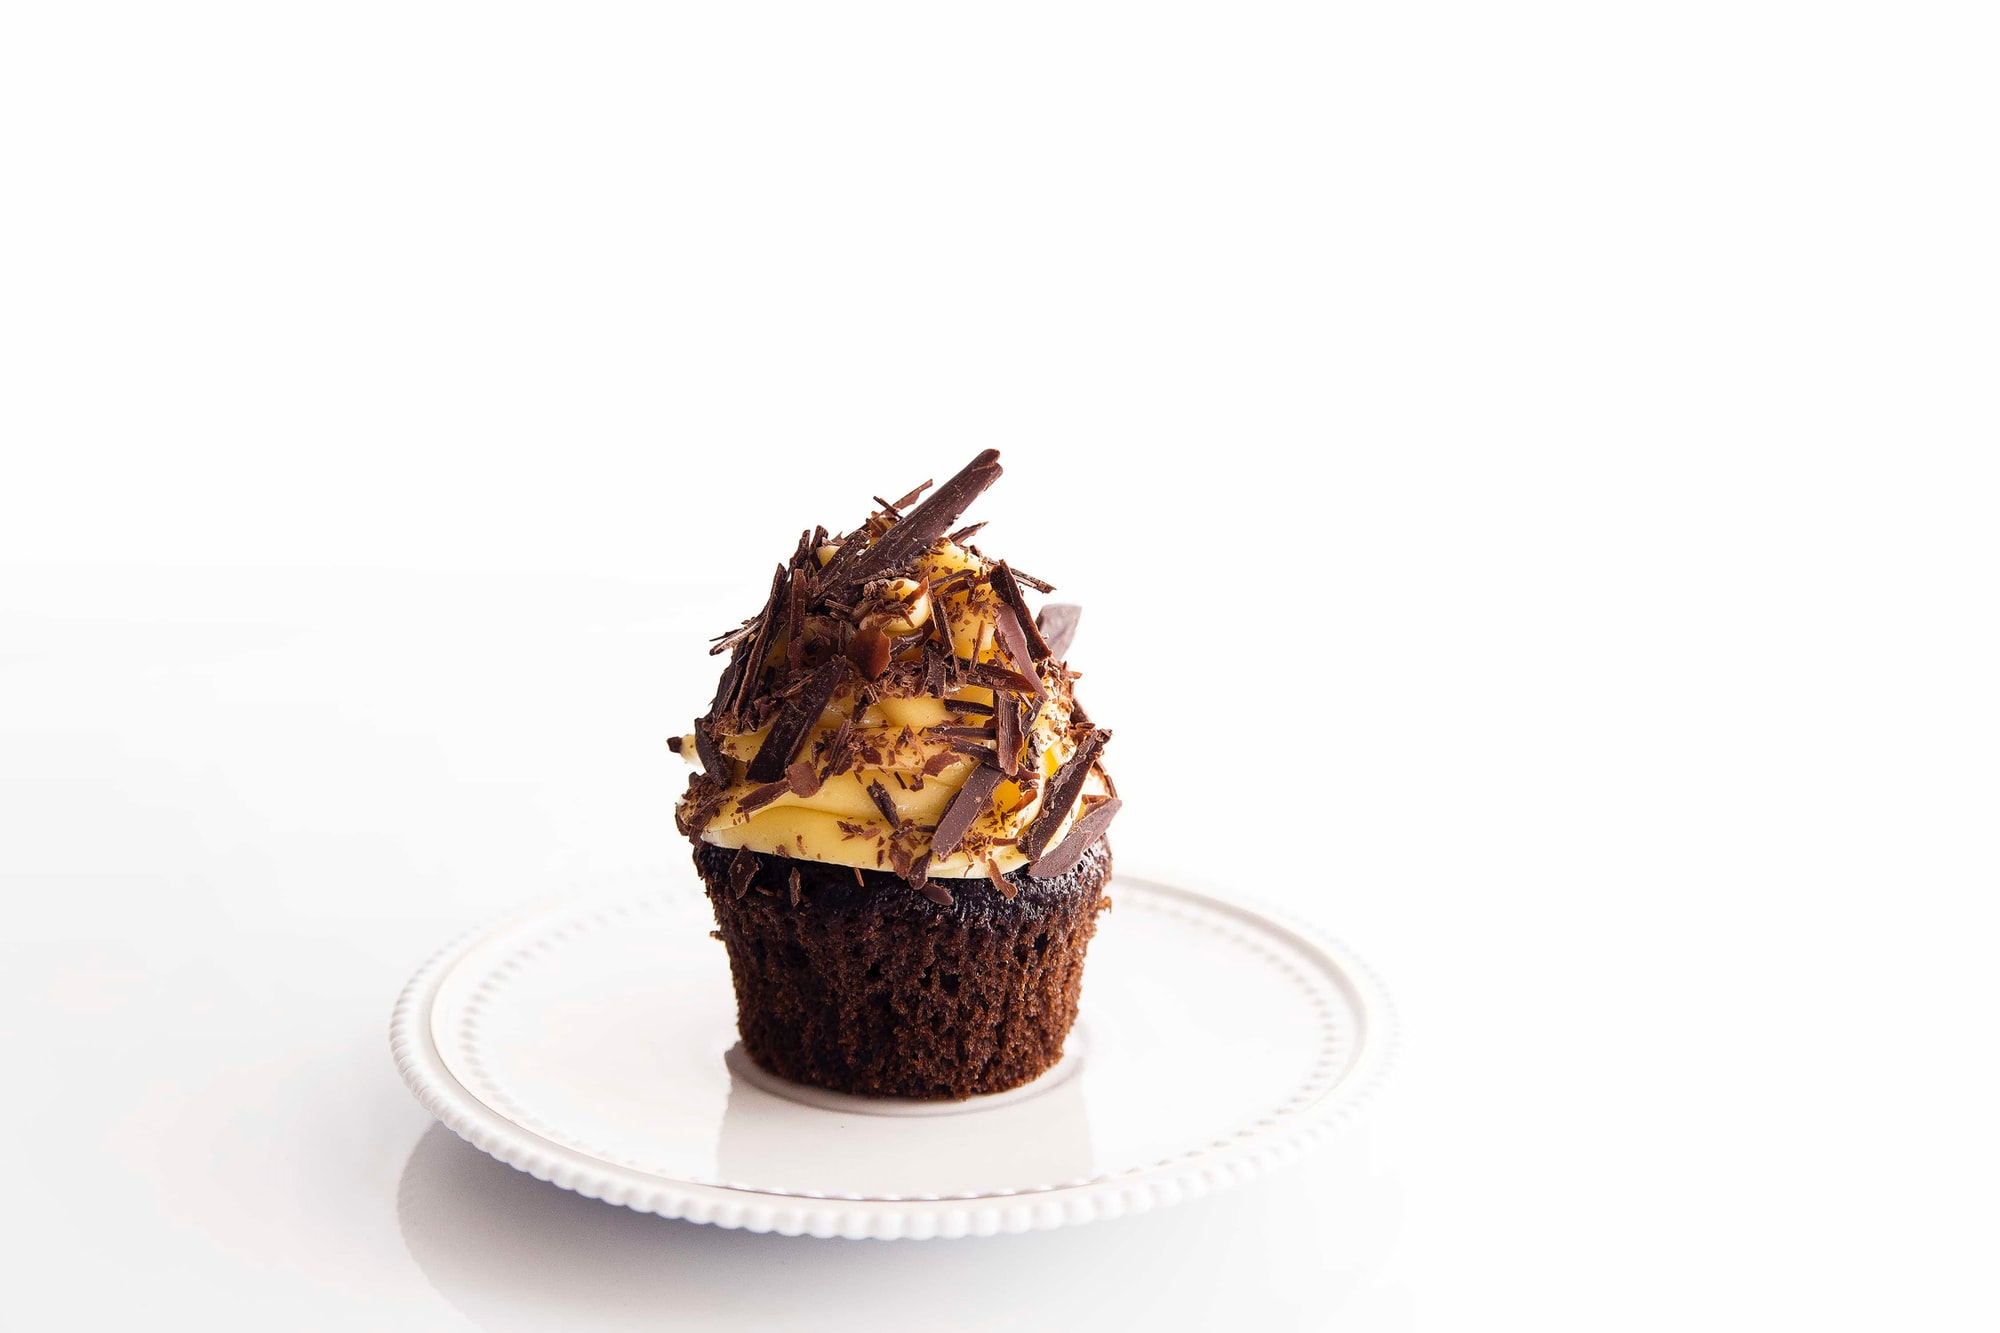 If you don't like cupcakes, I don't think we can be friends.